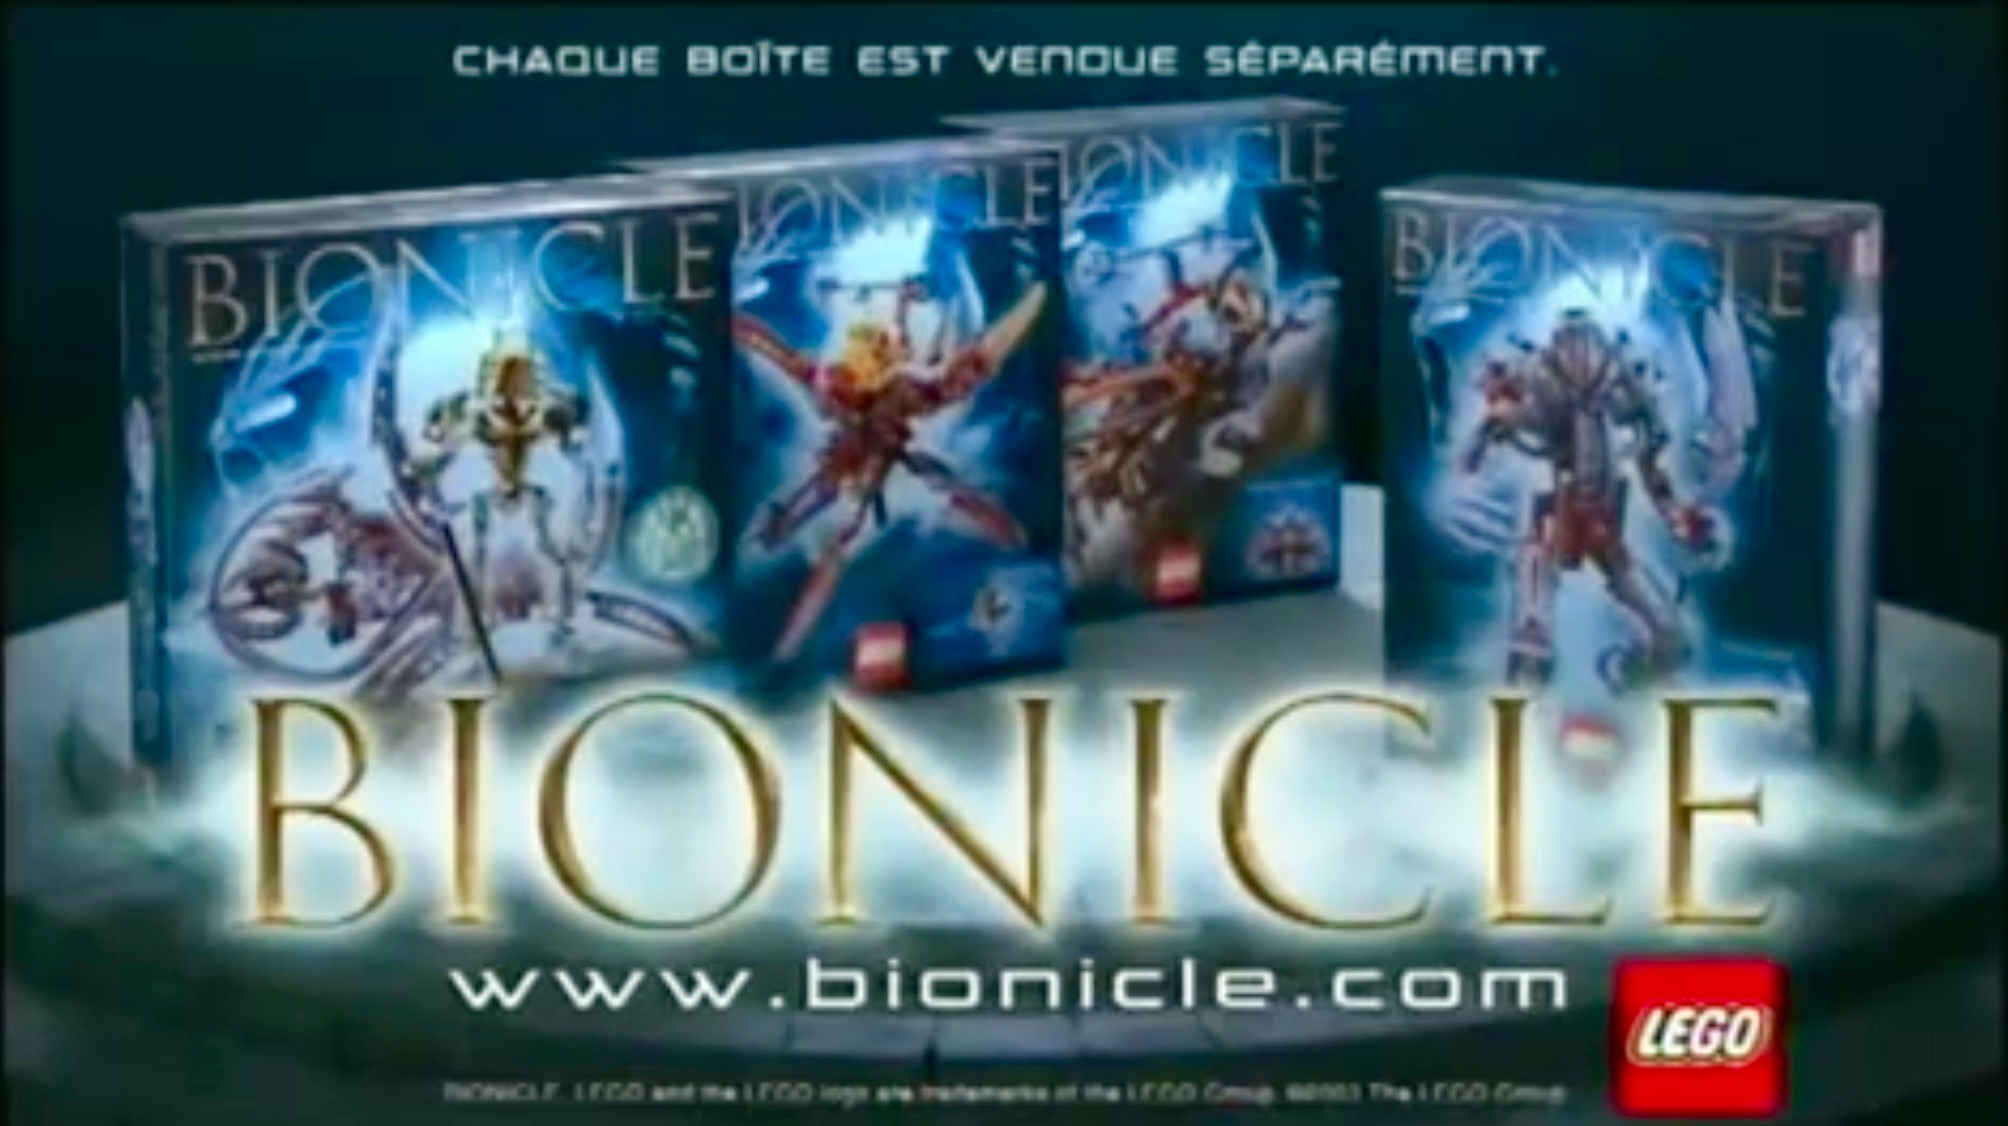 Bionicle commercial.jpg